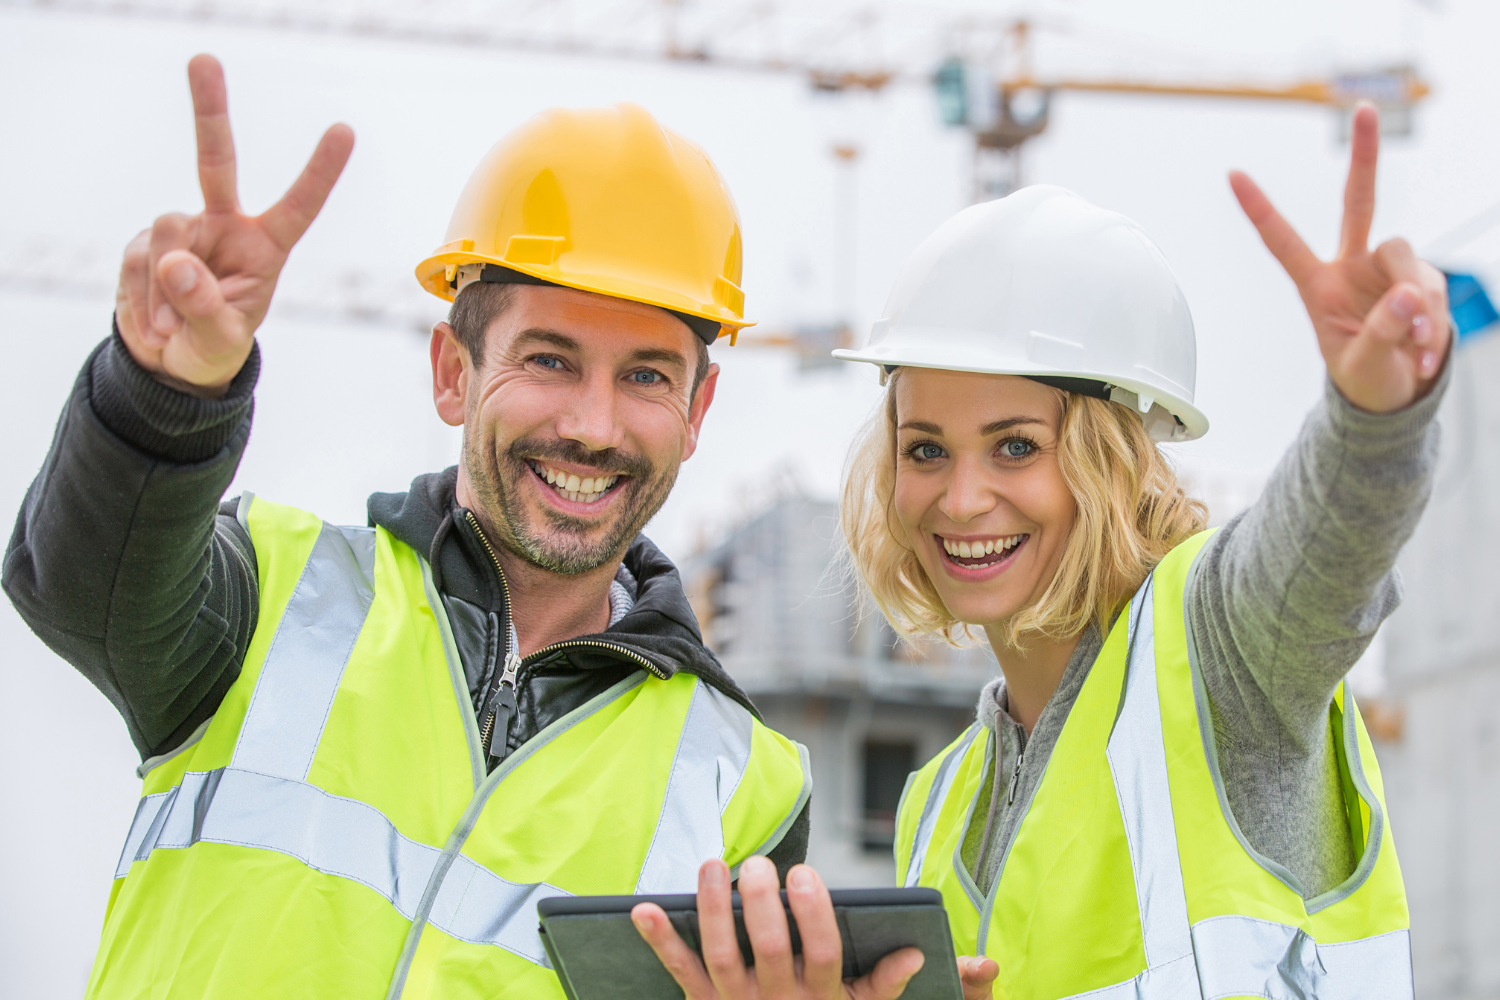 A male and female construction worker showing peace signs